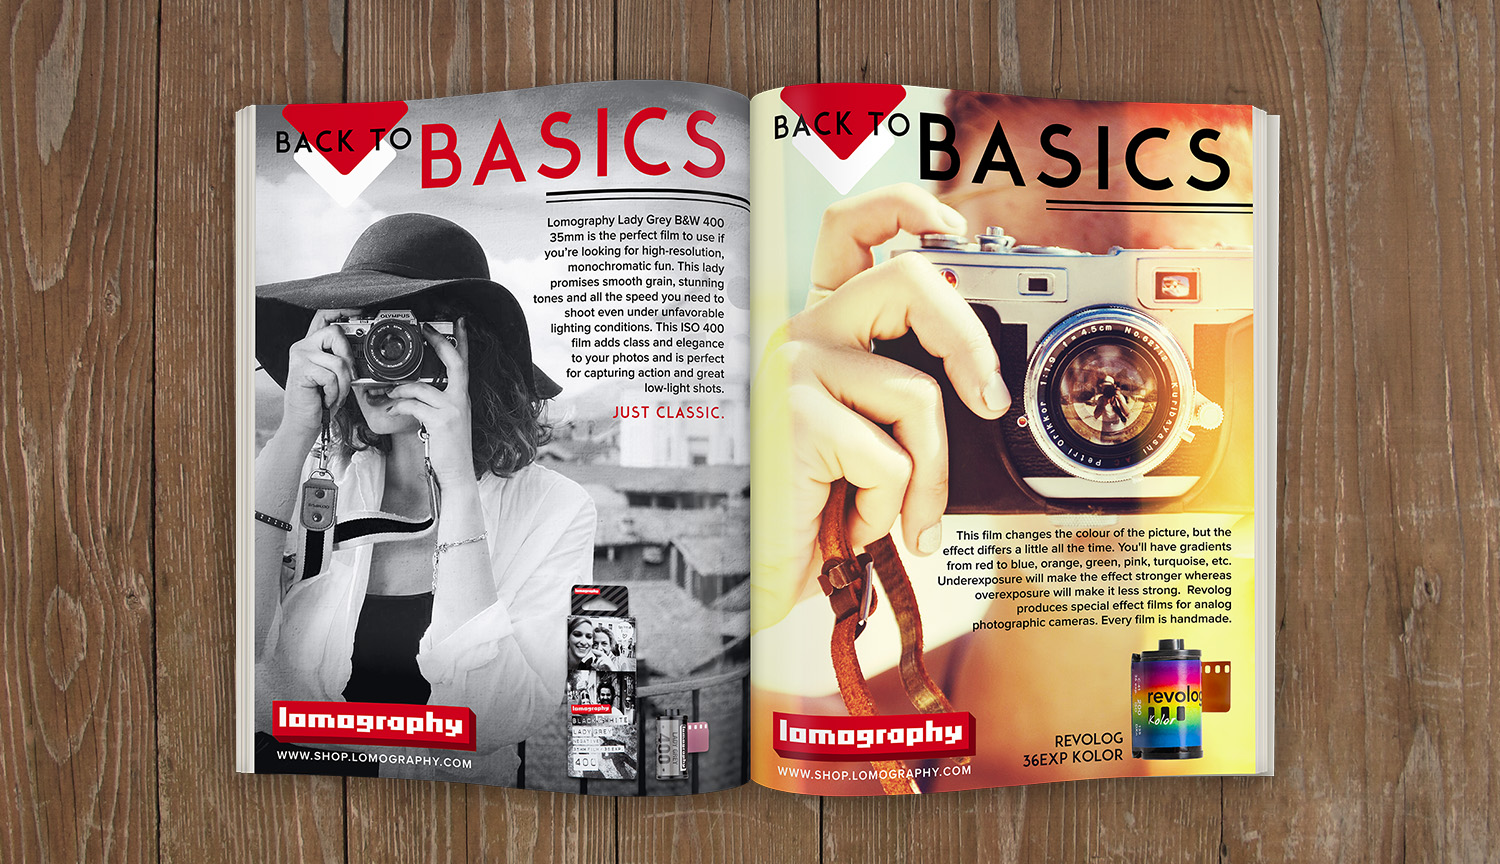 Magazine Mockup of Both Ads